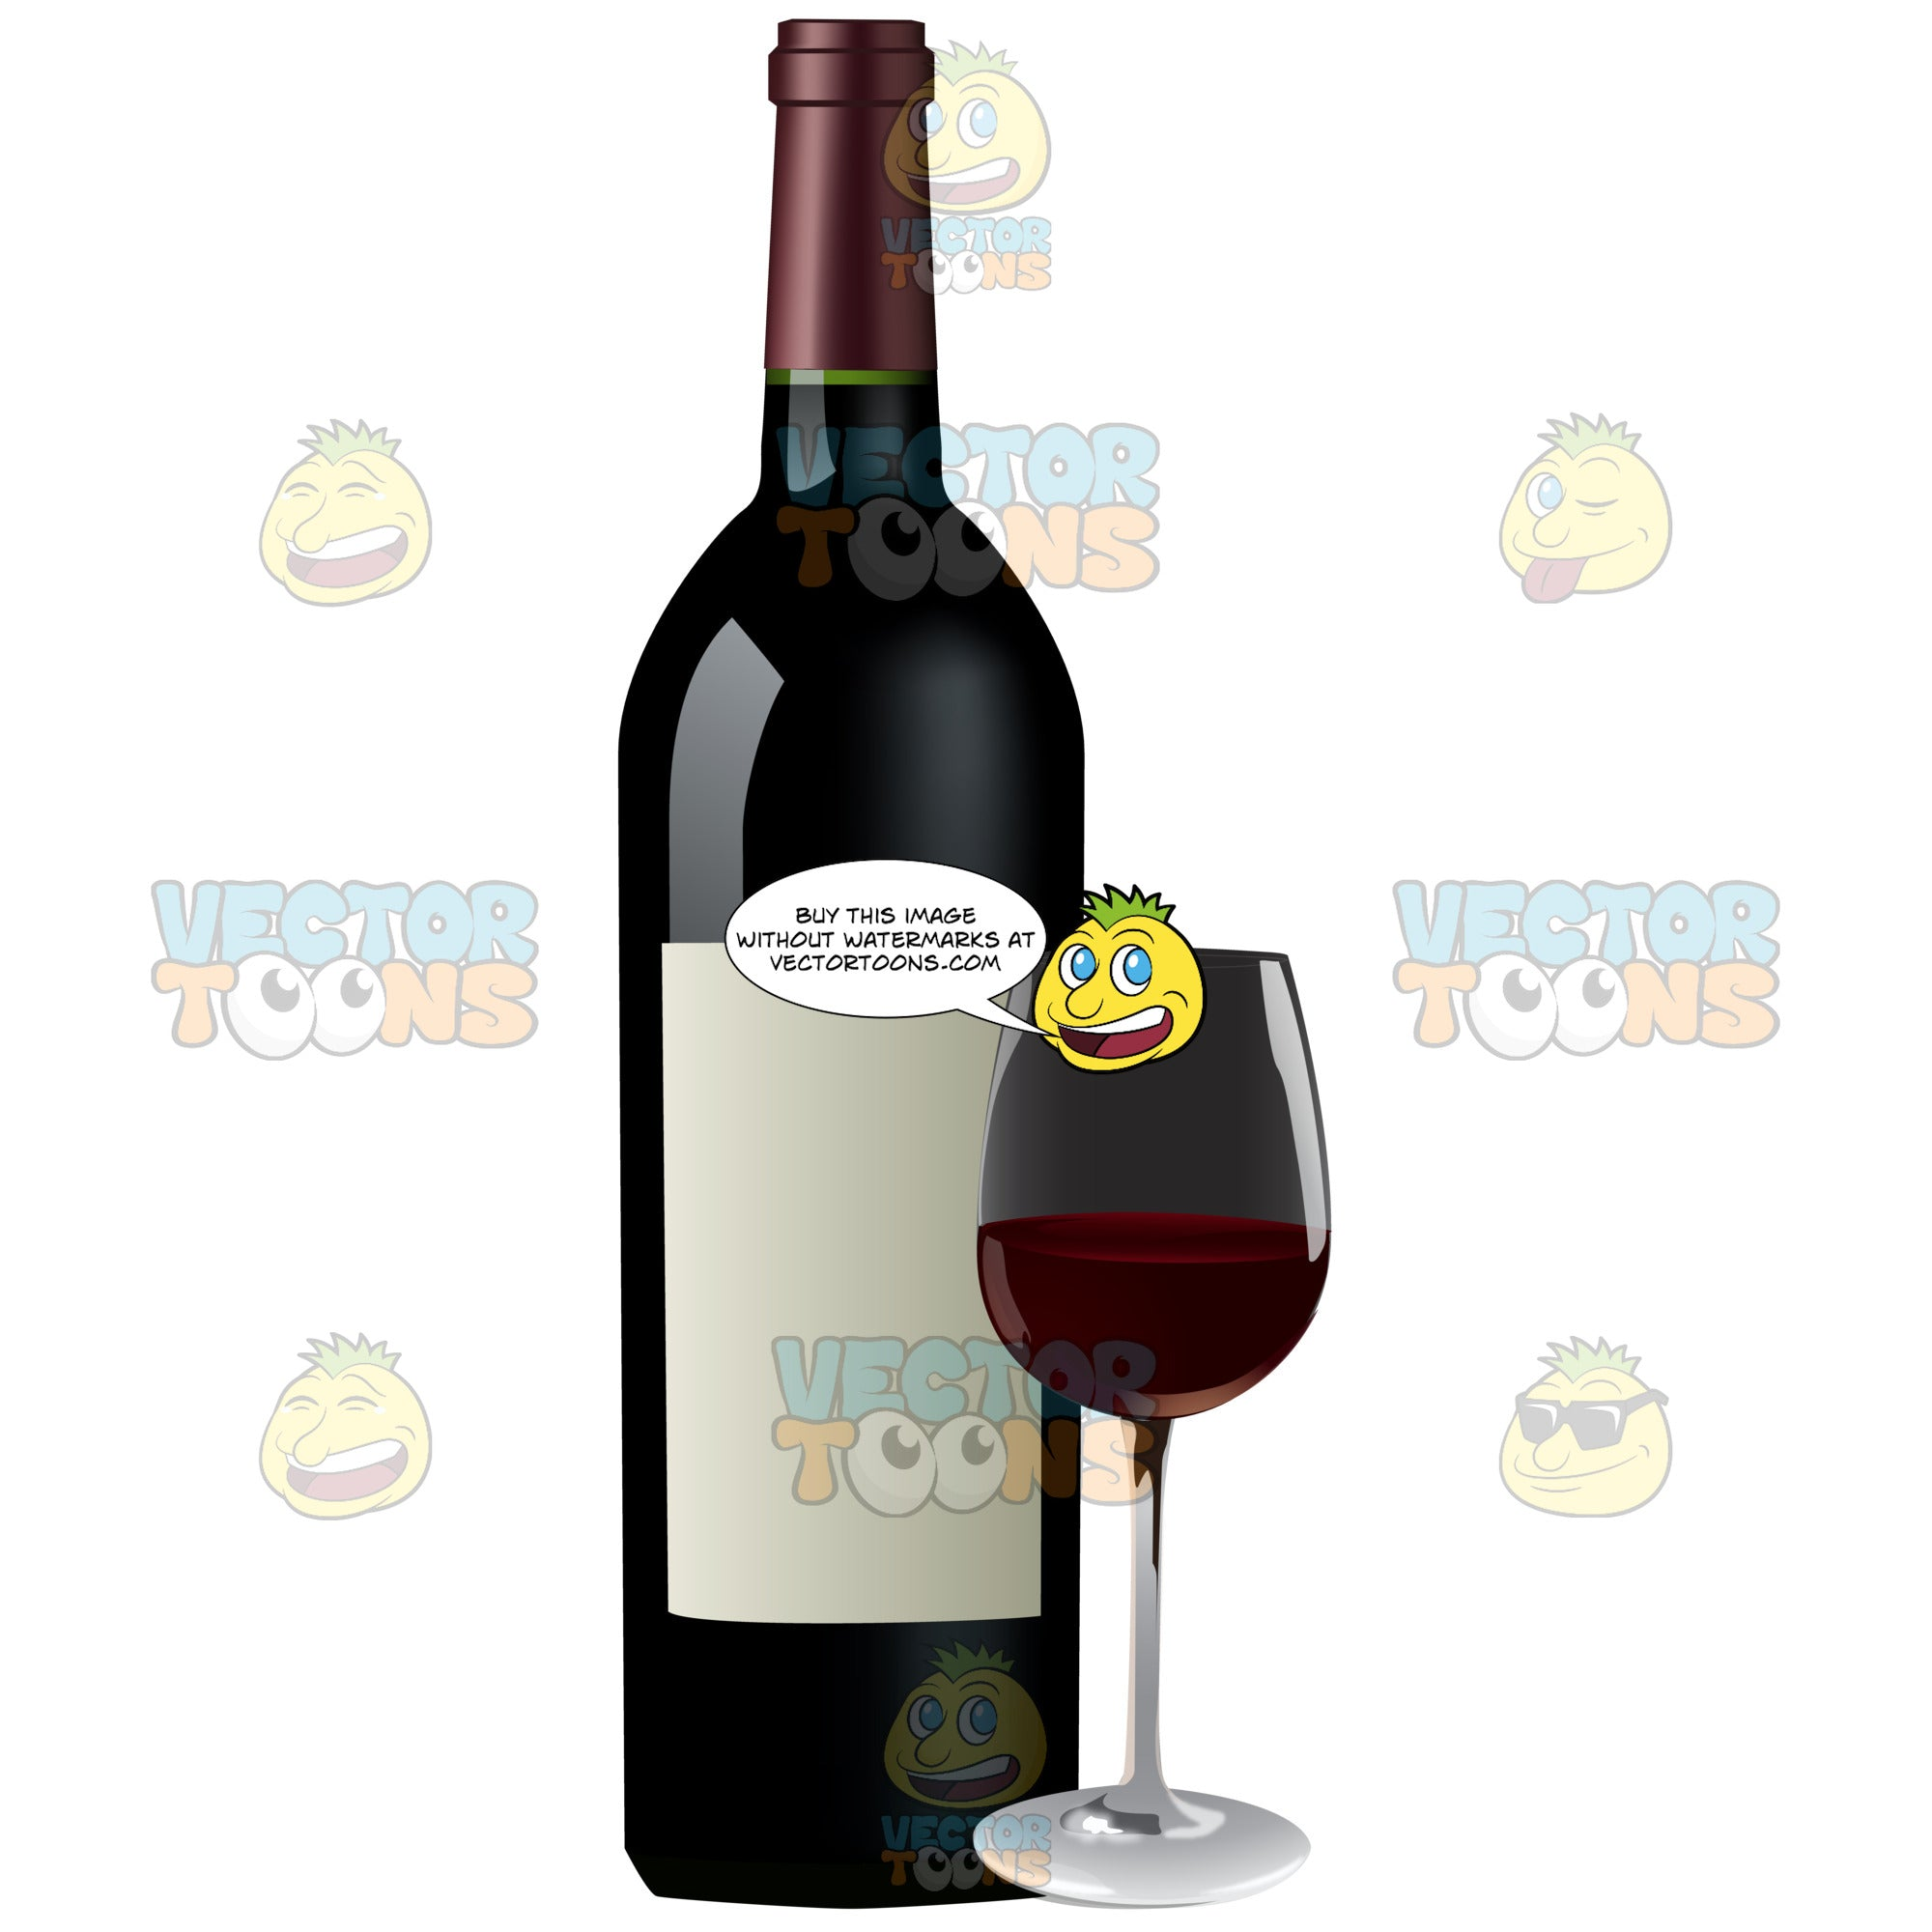 Red Wine Poured In A Glass Next To The Bottle